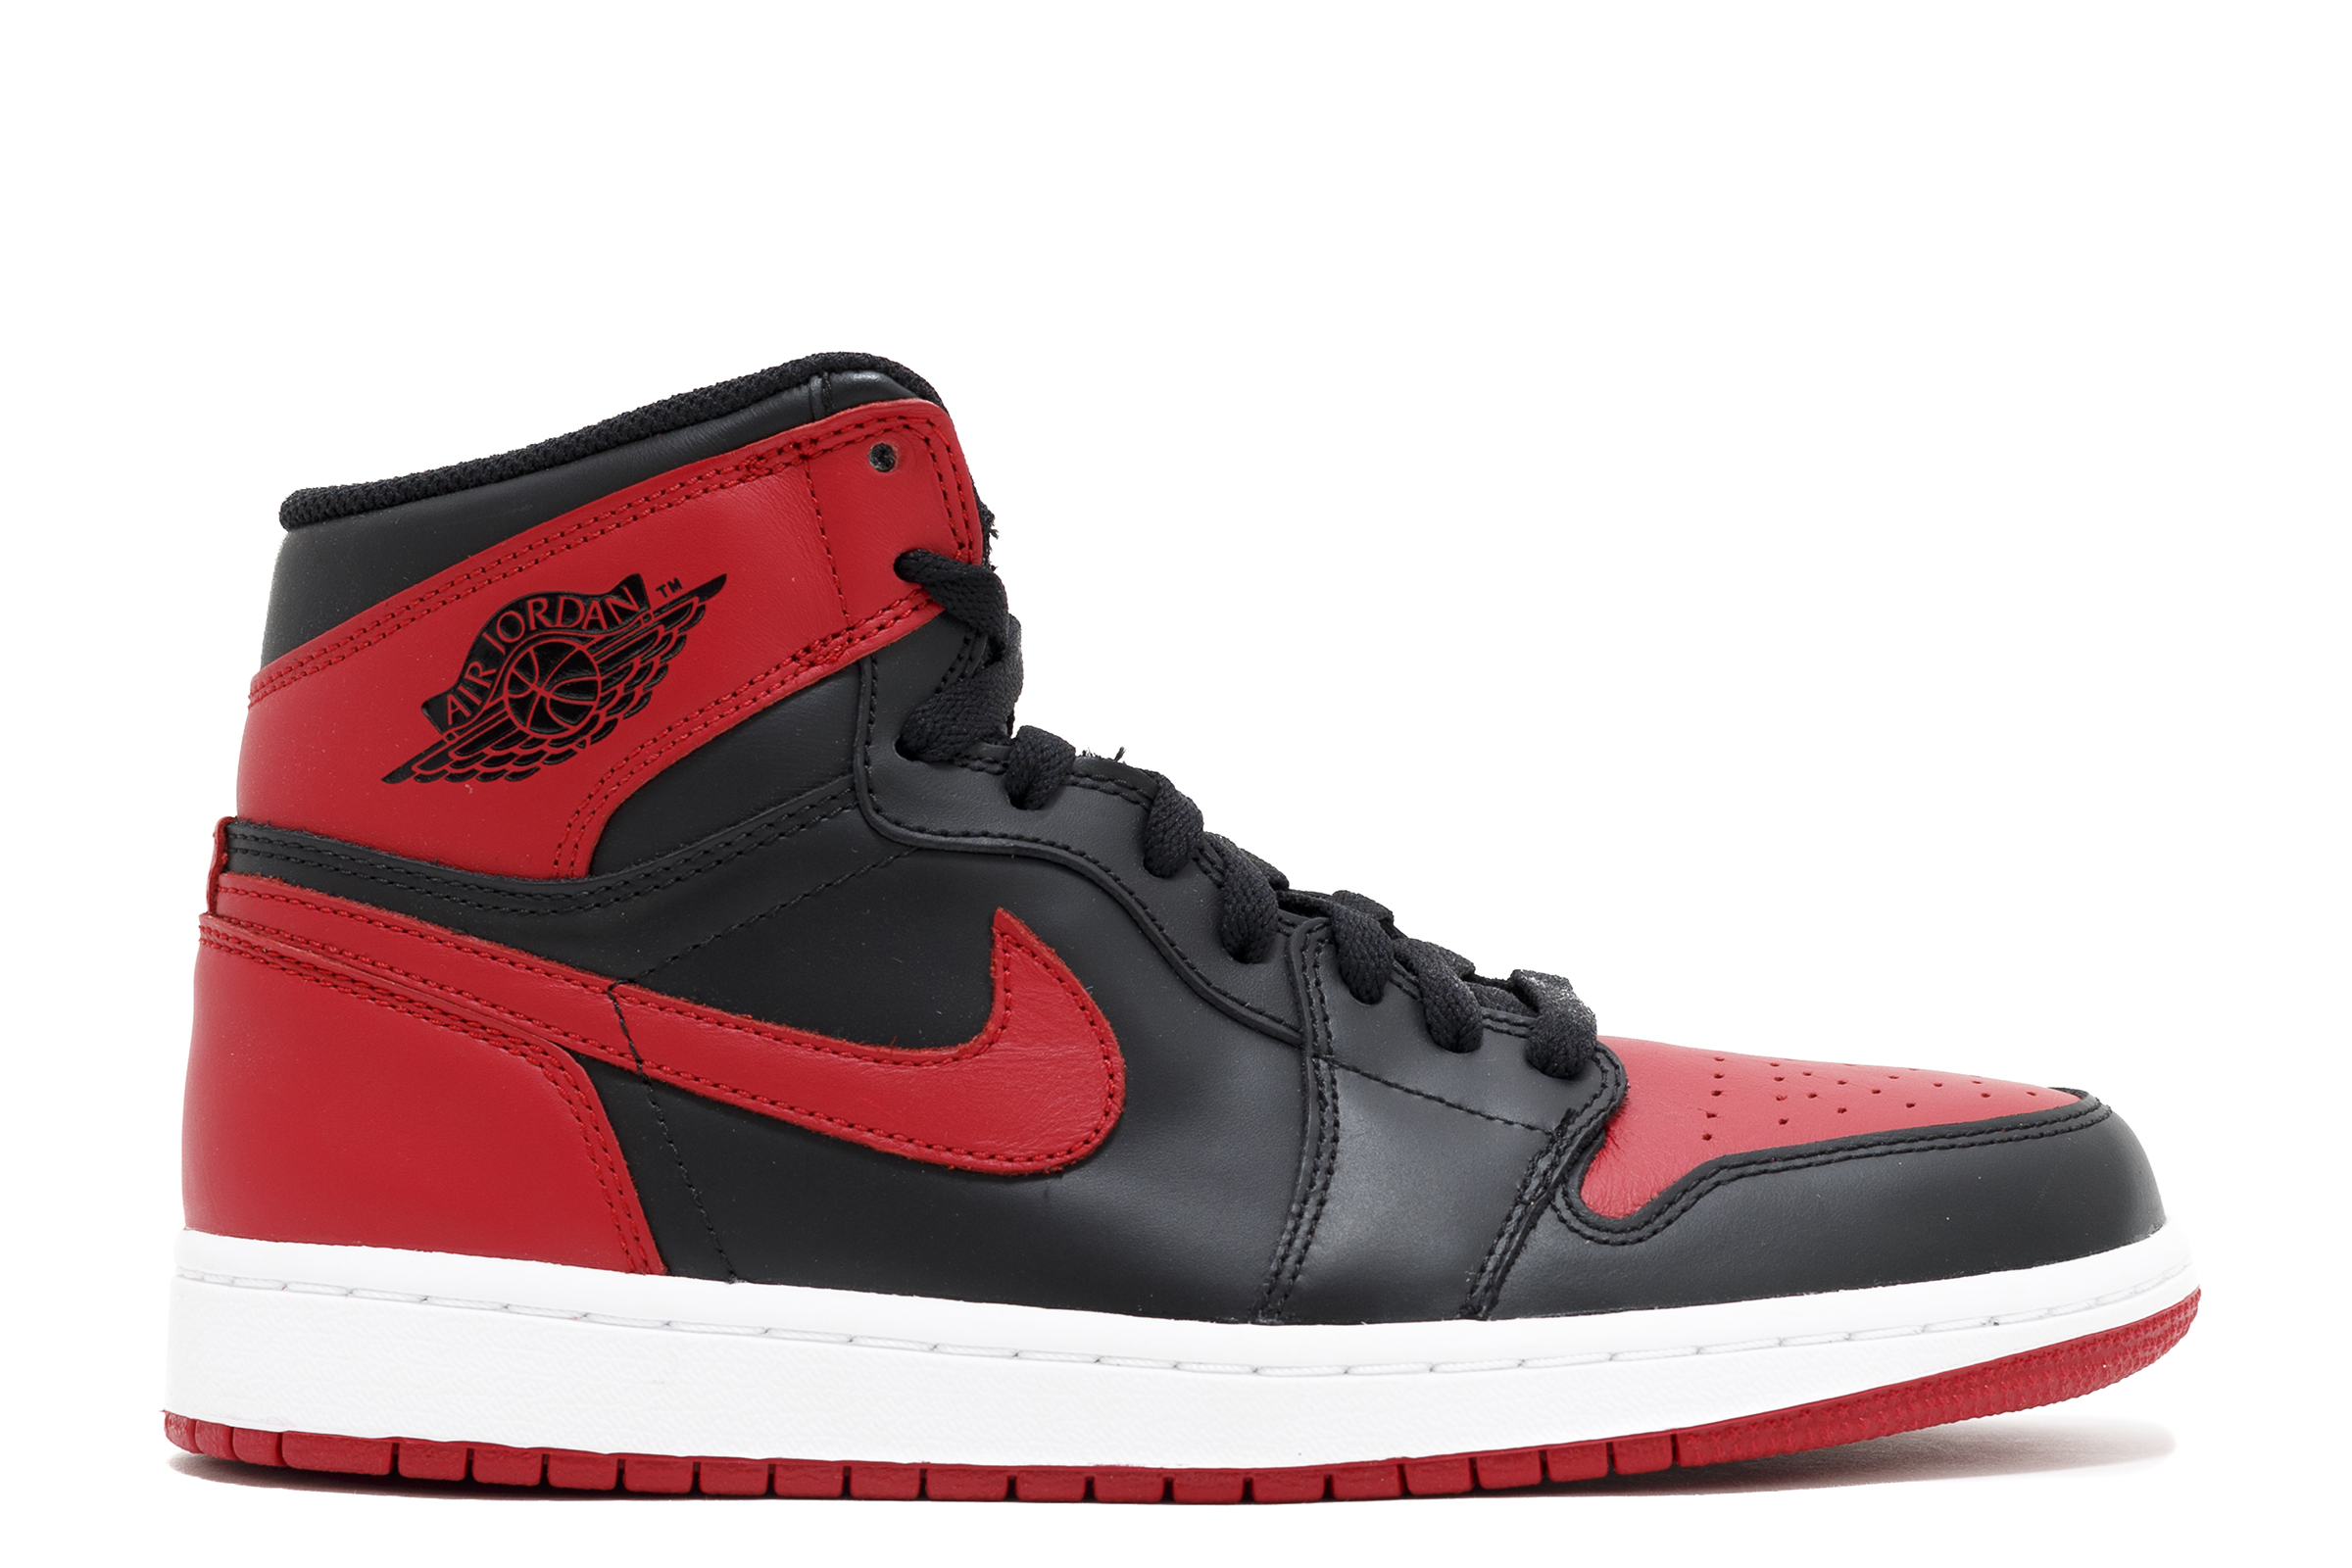 3c1ede7e2ee The One That Started It All: A History of the Jordan 1 - Jordan 1 ...